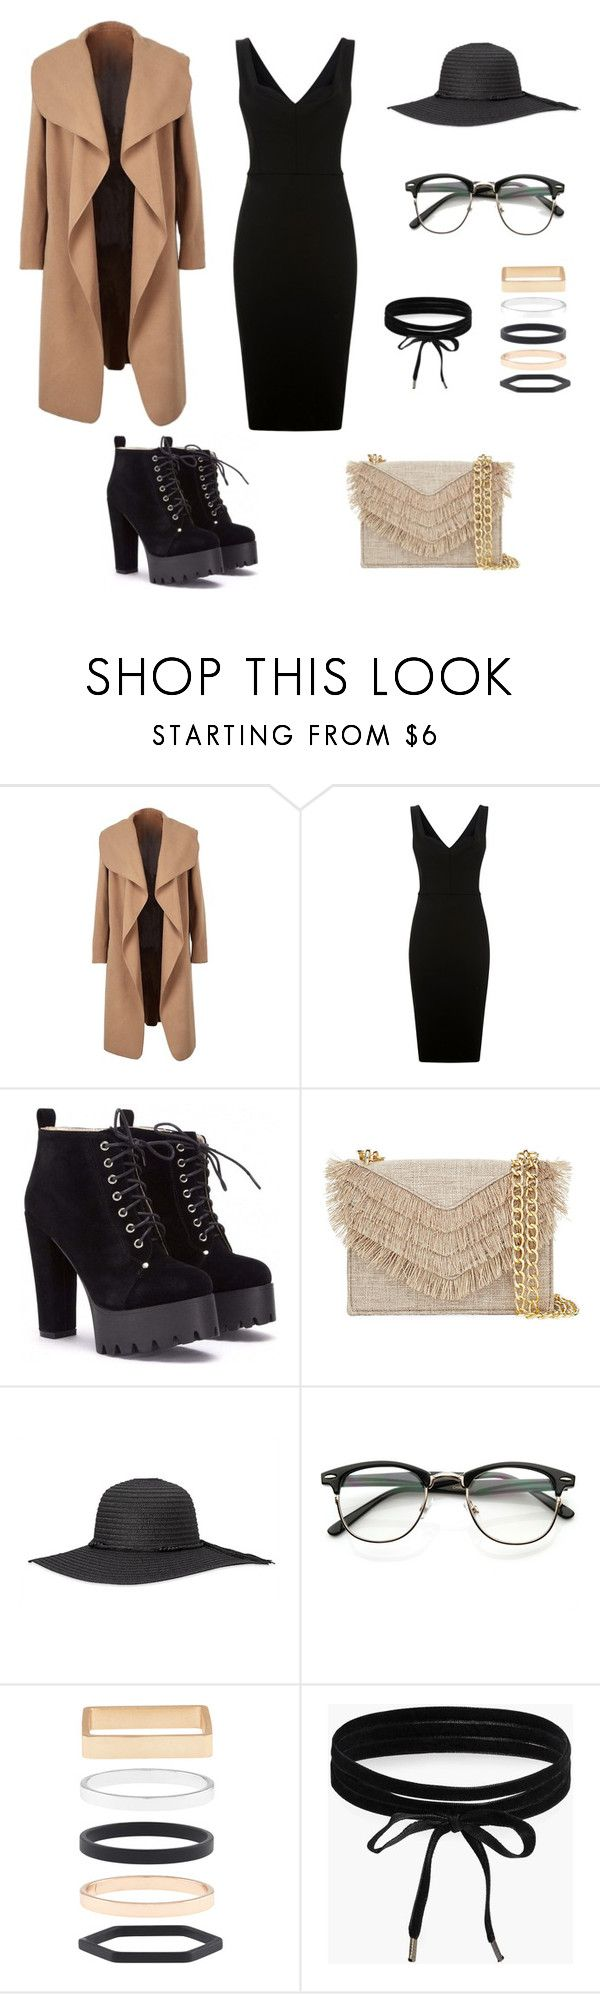 """""""Untitled #1"""" by boglarka-ferencsak ❤ liked on Polyvore featuring Victoria Beckham, Cynthia Rowley, Accessorize and Boohoo"""